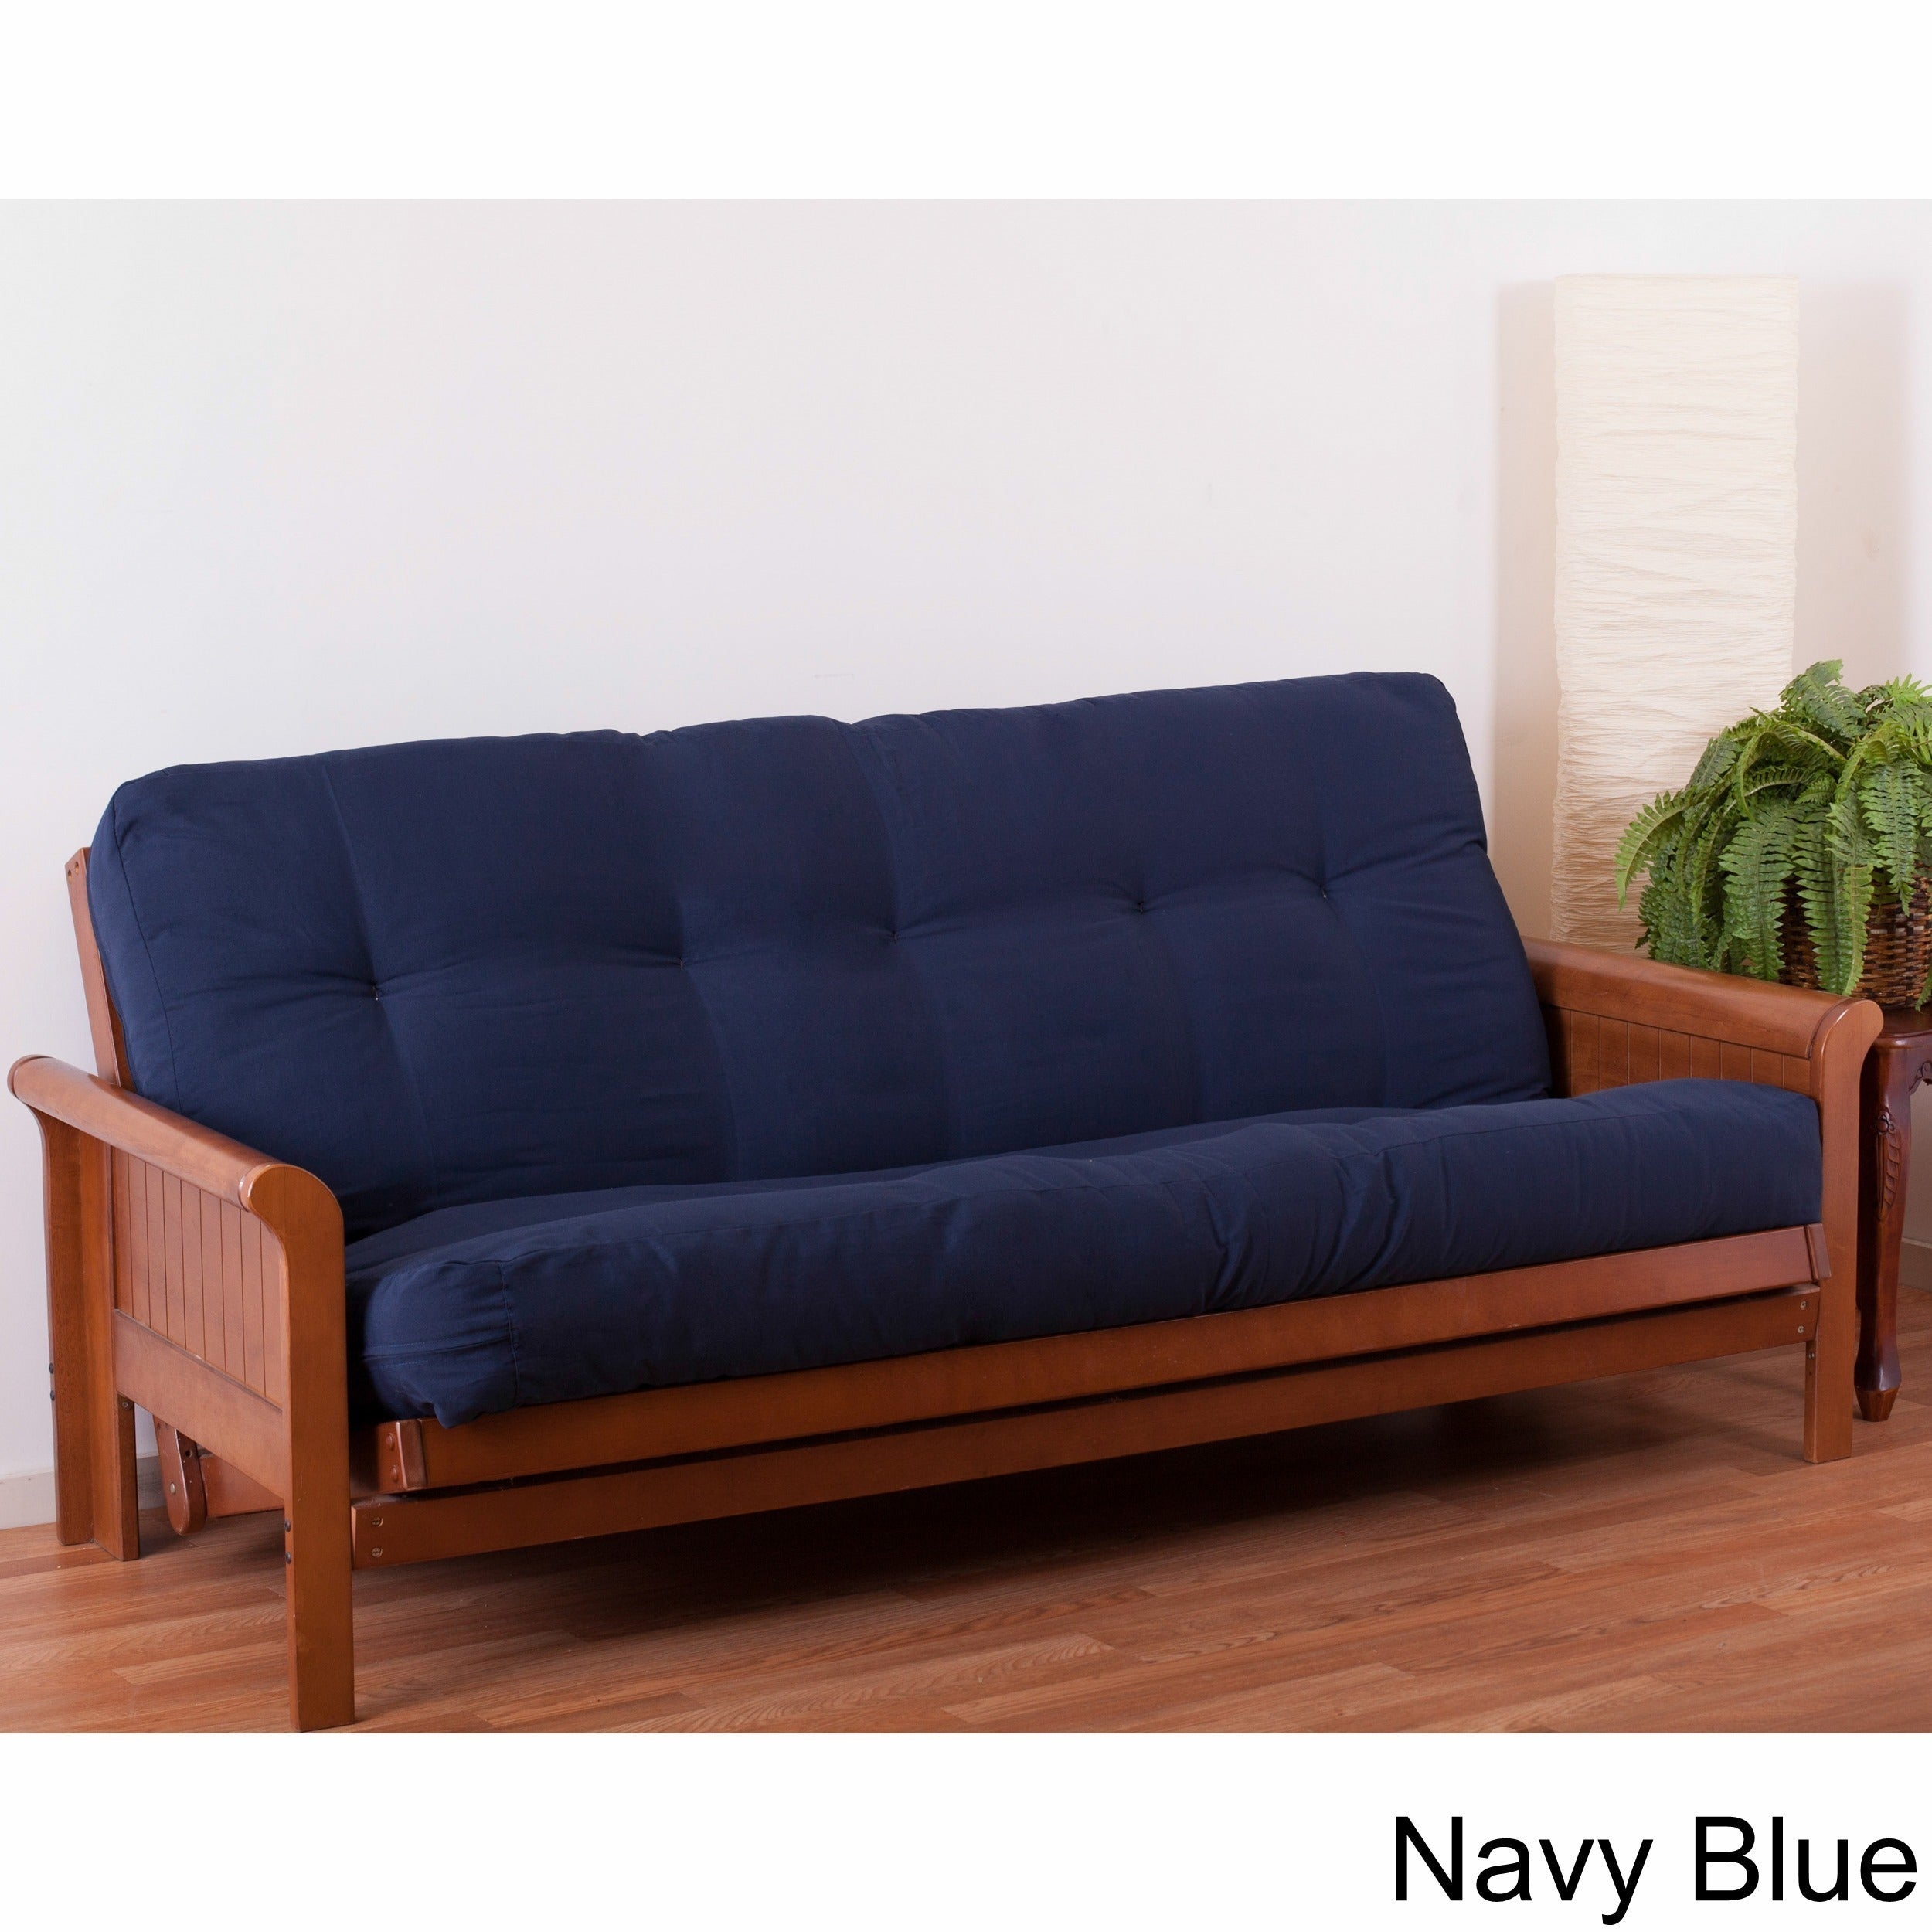 Full 8 inch Quality Futon Mattress Free Shipping Today